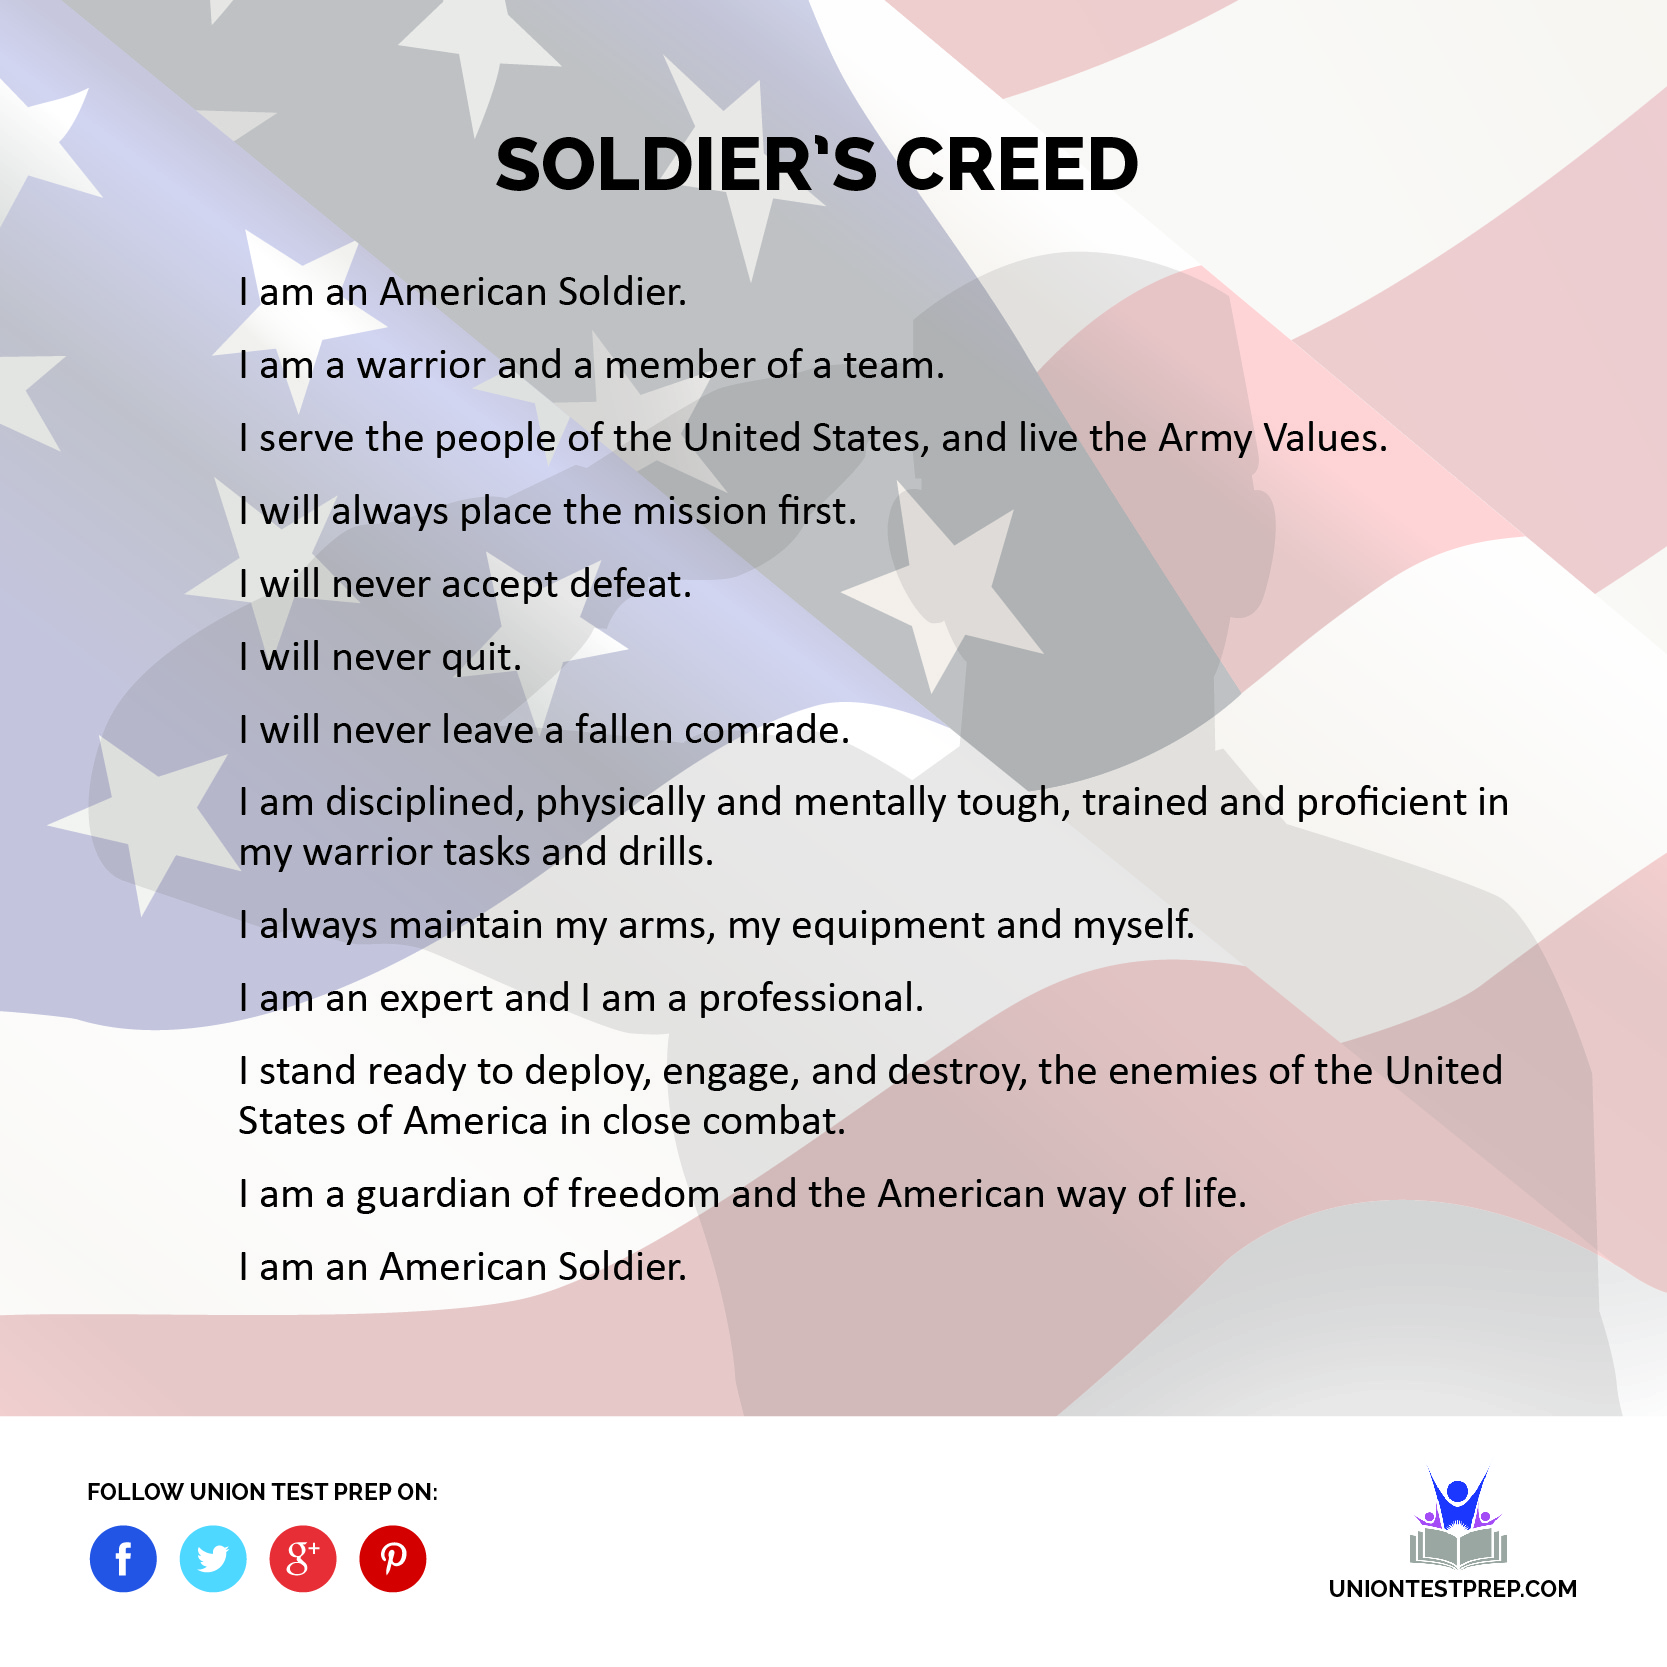 what is definitely the troops creed